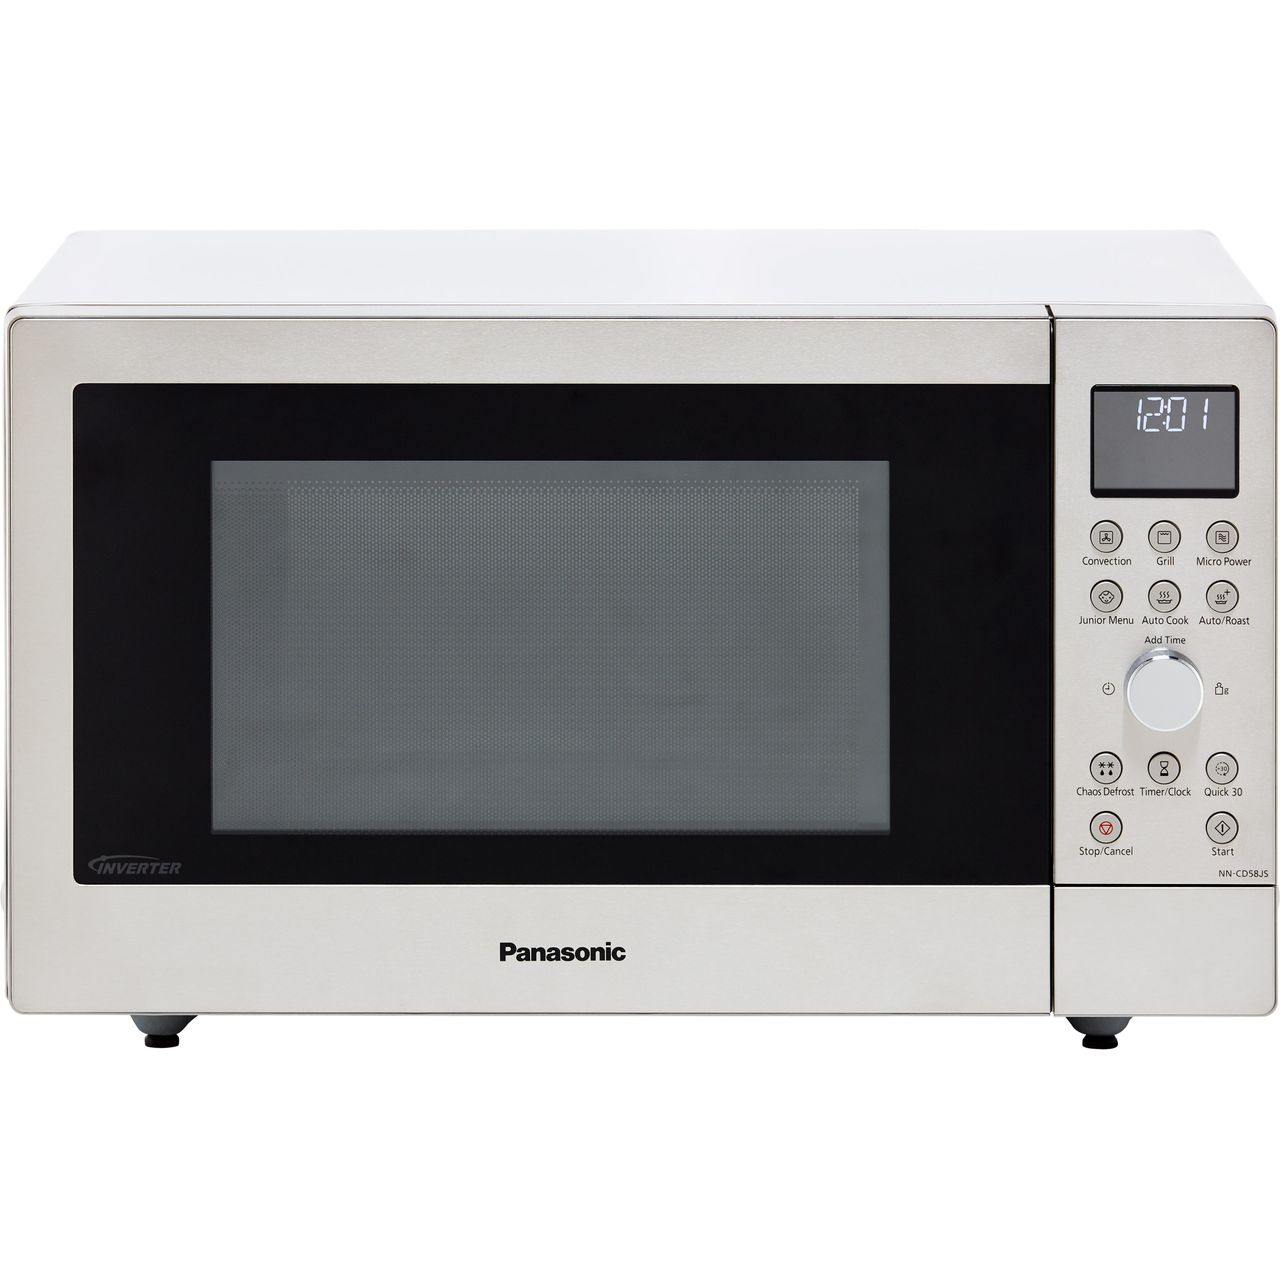 Panasonic Nn Cd58jsbpq 27 Litre Combination Microwave Oven Silver Si